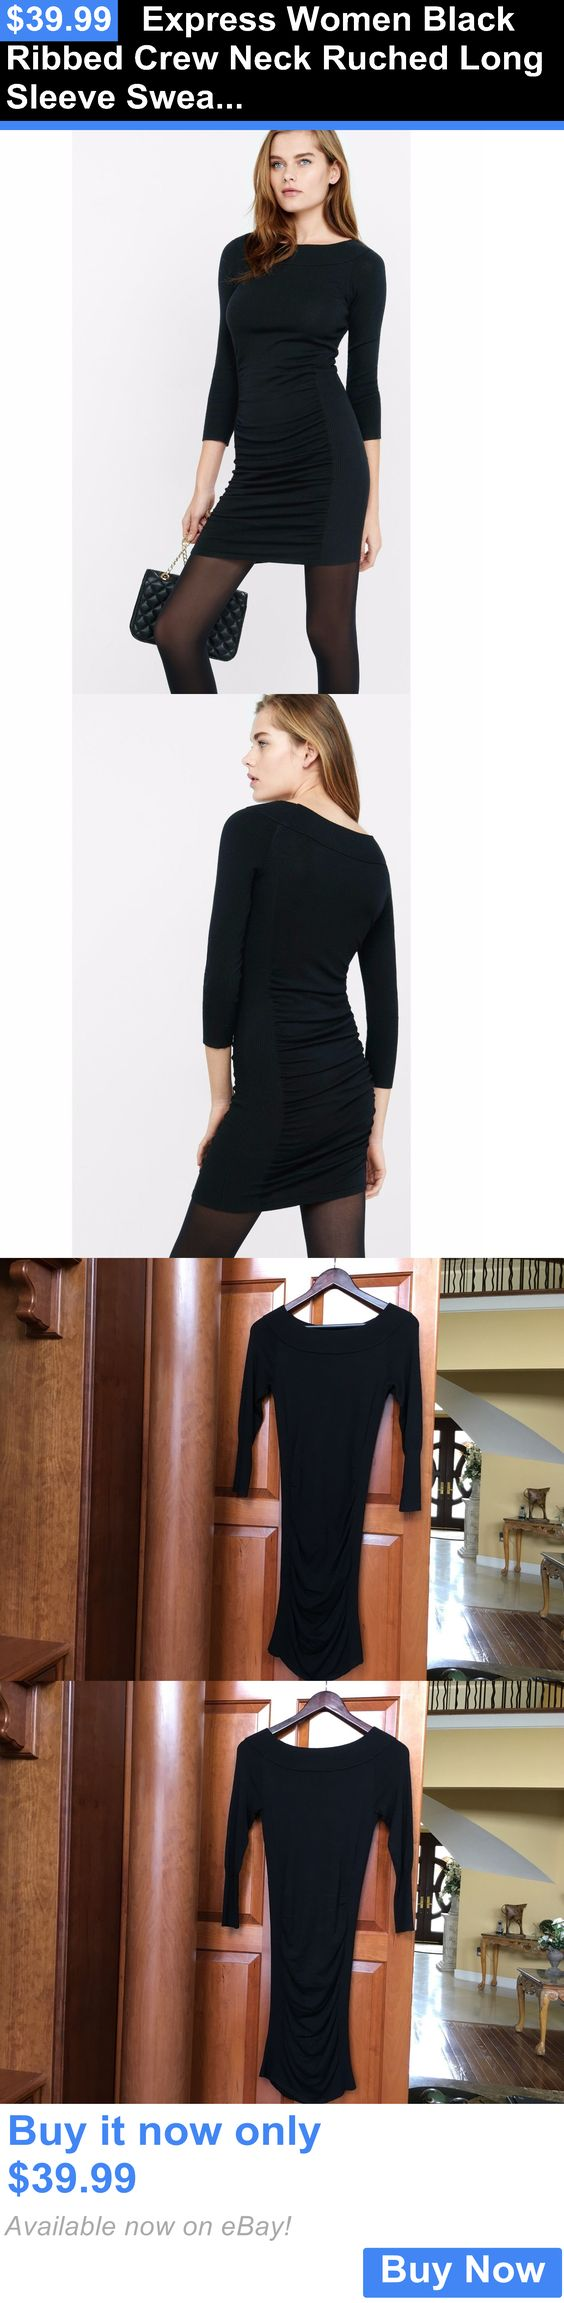 Clothing and accessories express women black ribbed crew neck